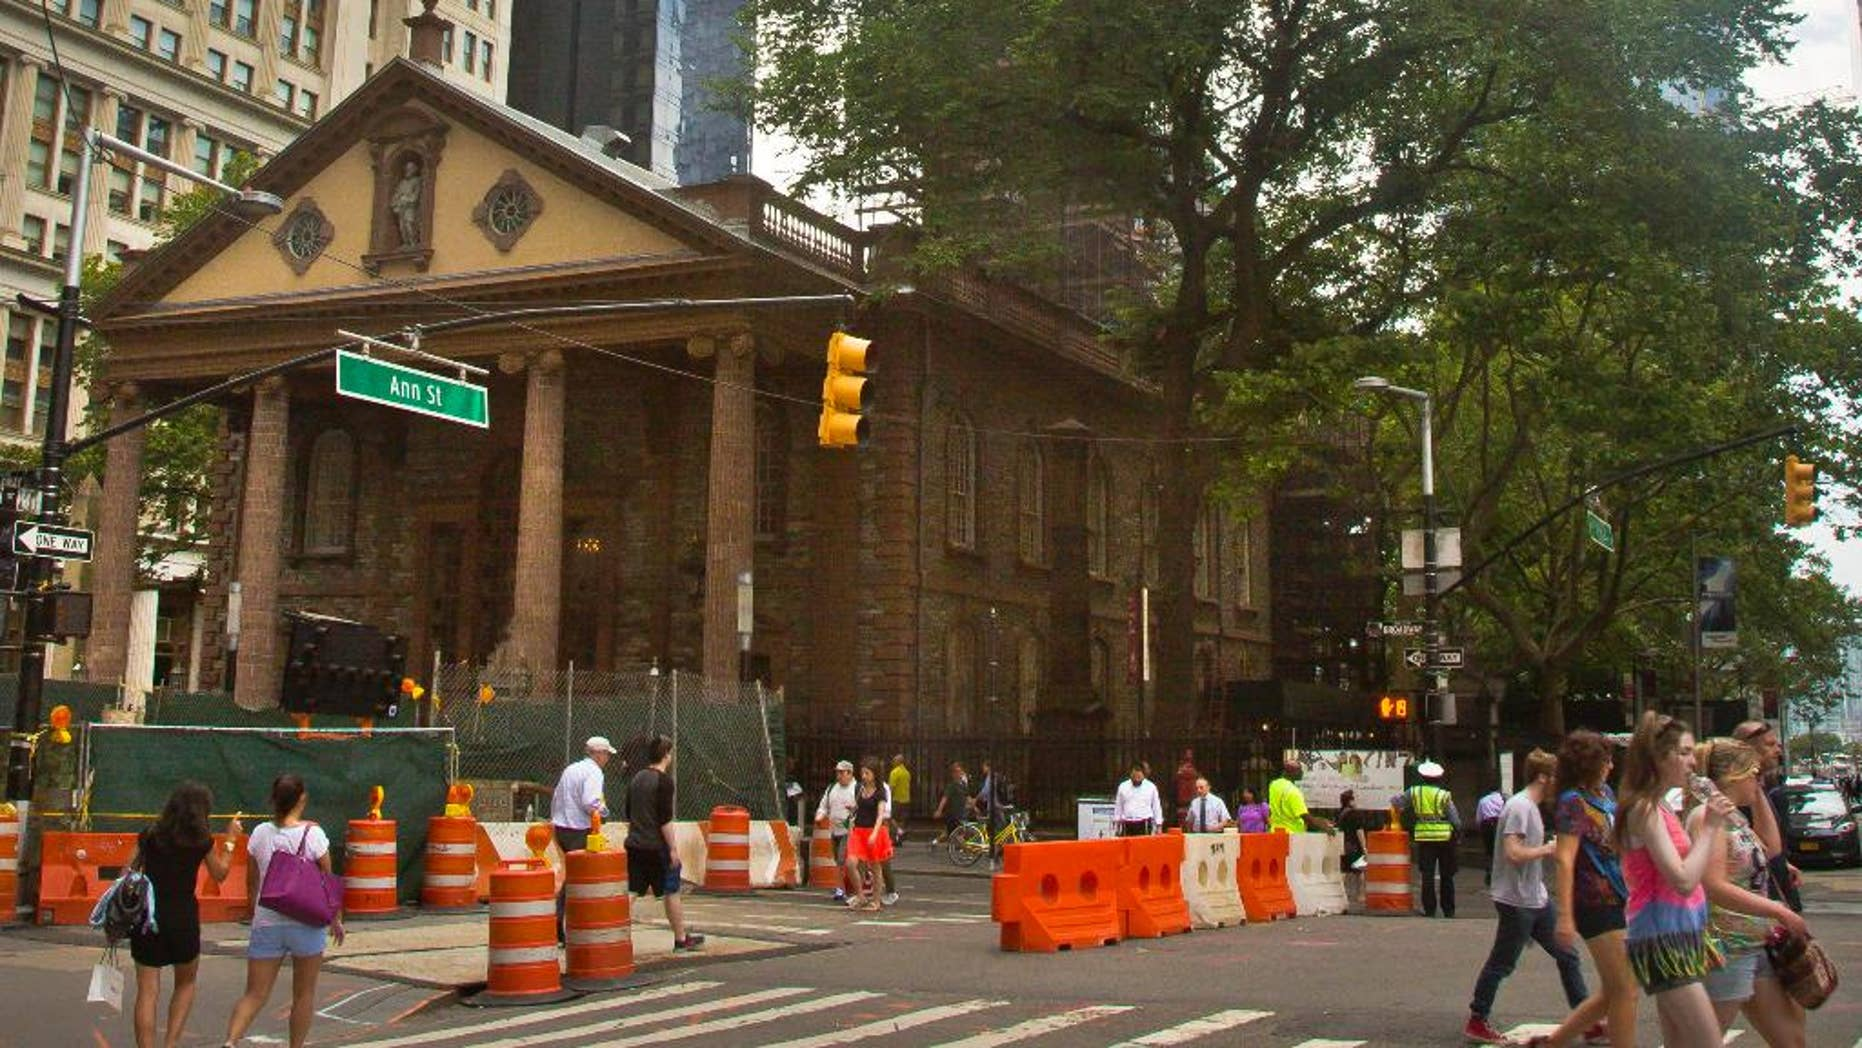 """FILE - In this June 25, 2015, file photo, the World Trade Center, right, looms behind St. Paul's Chapel with its steeple wrapped in scaffolding for repairs, in New York. The winner of a new competition open to people of all faiths called """"The Reconciliation Preaching Prize,"""" has been won by an Army chaplain from Austin, Texas. The Rev. David Peters will have the privilege of delivering an original sermon on Sept. 11, at the chapel near ground zero that was turned into a makeshift memorial shrine and became a place of rest and renewal for volunteers and responders, following the terrorist attacks that brought down the twin towers. (AP Photo/Bebeto Matthews, File)"""